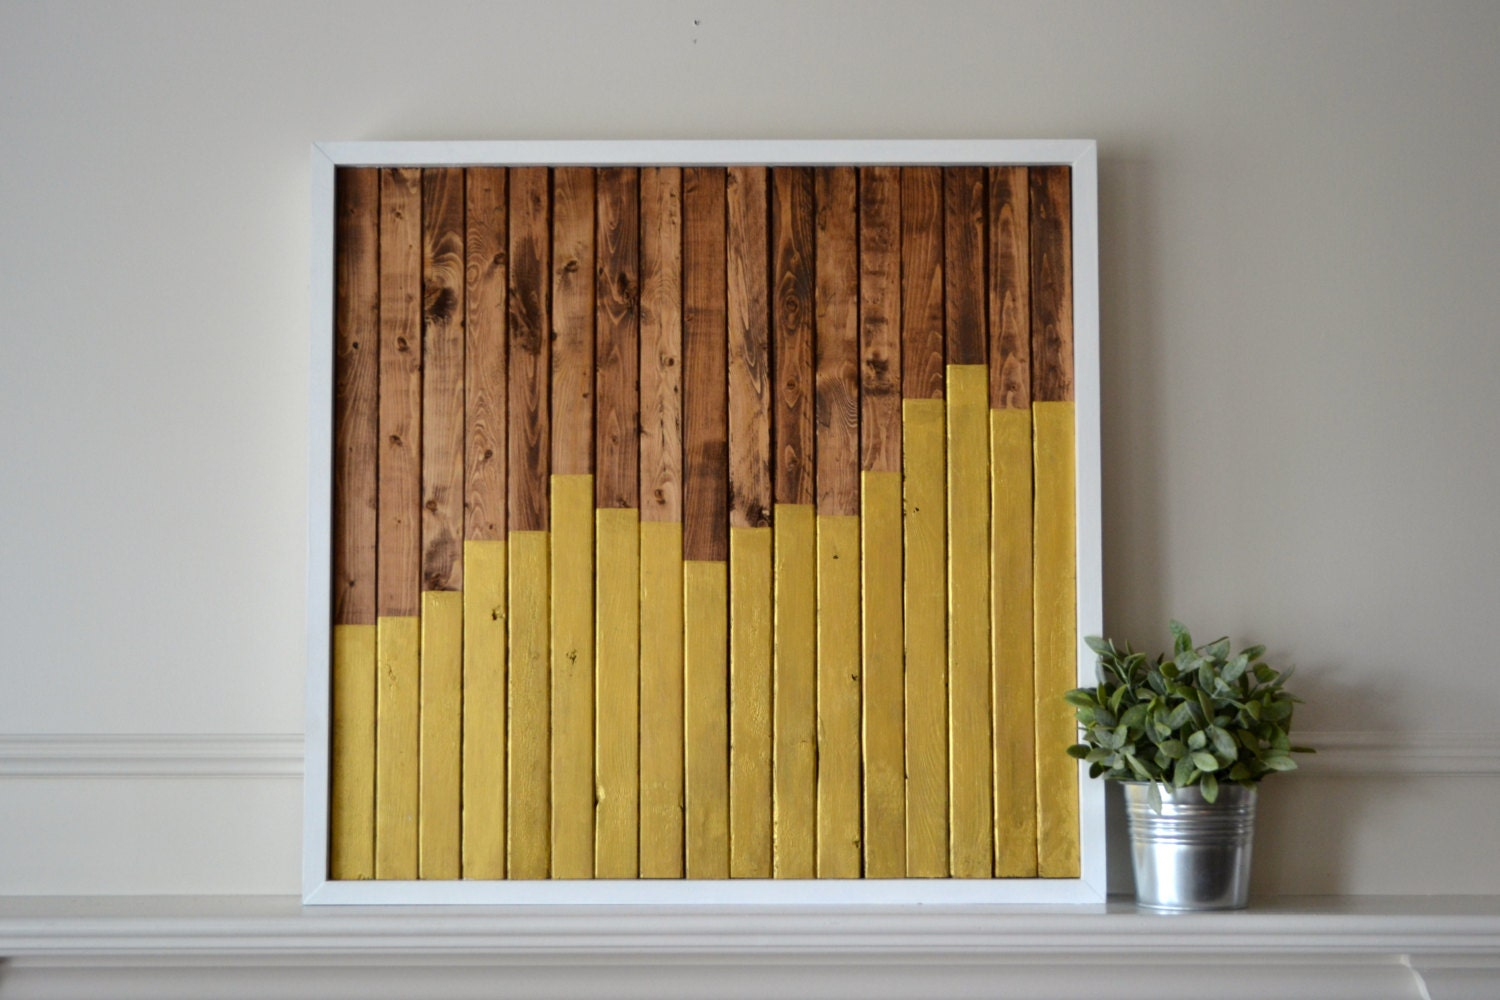 Sale Reclaimed Wood Art Ascend Wood Pieces With Walnut Stain: reclaimed wood wall art for sale